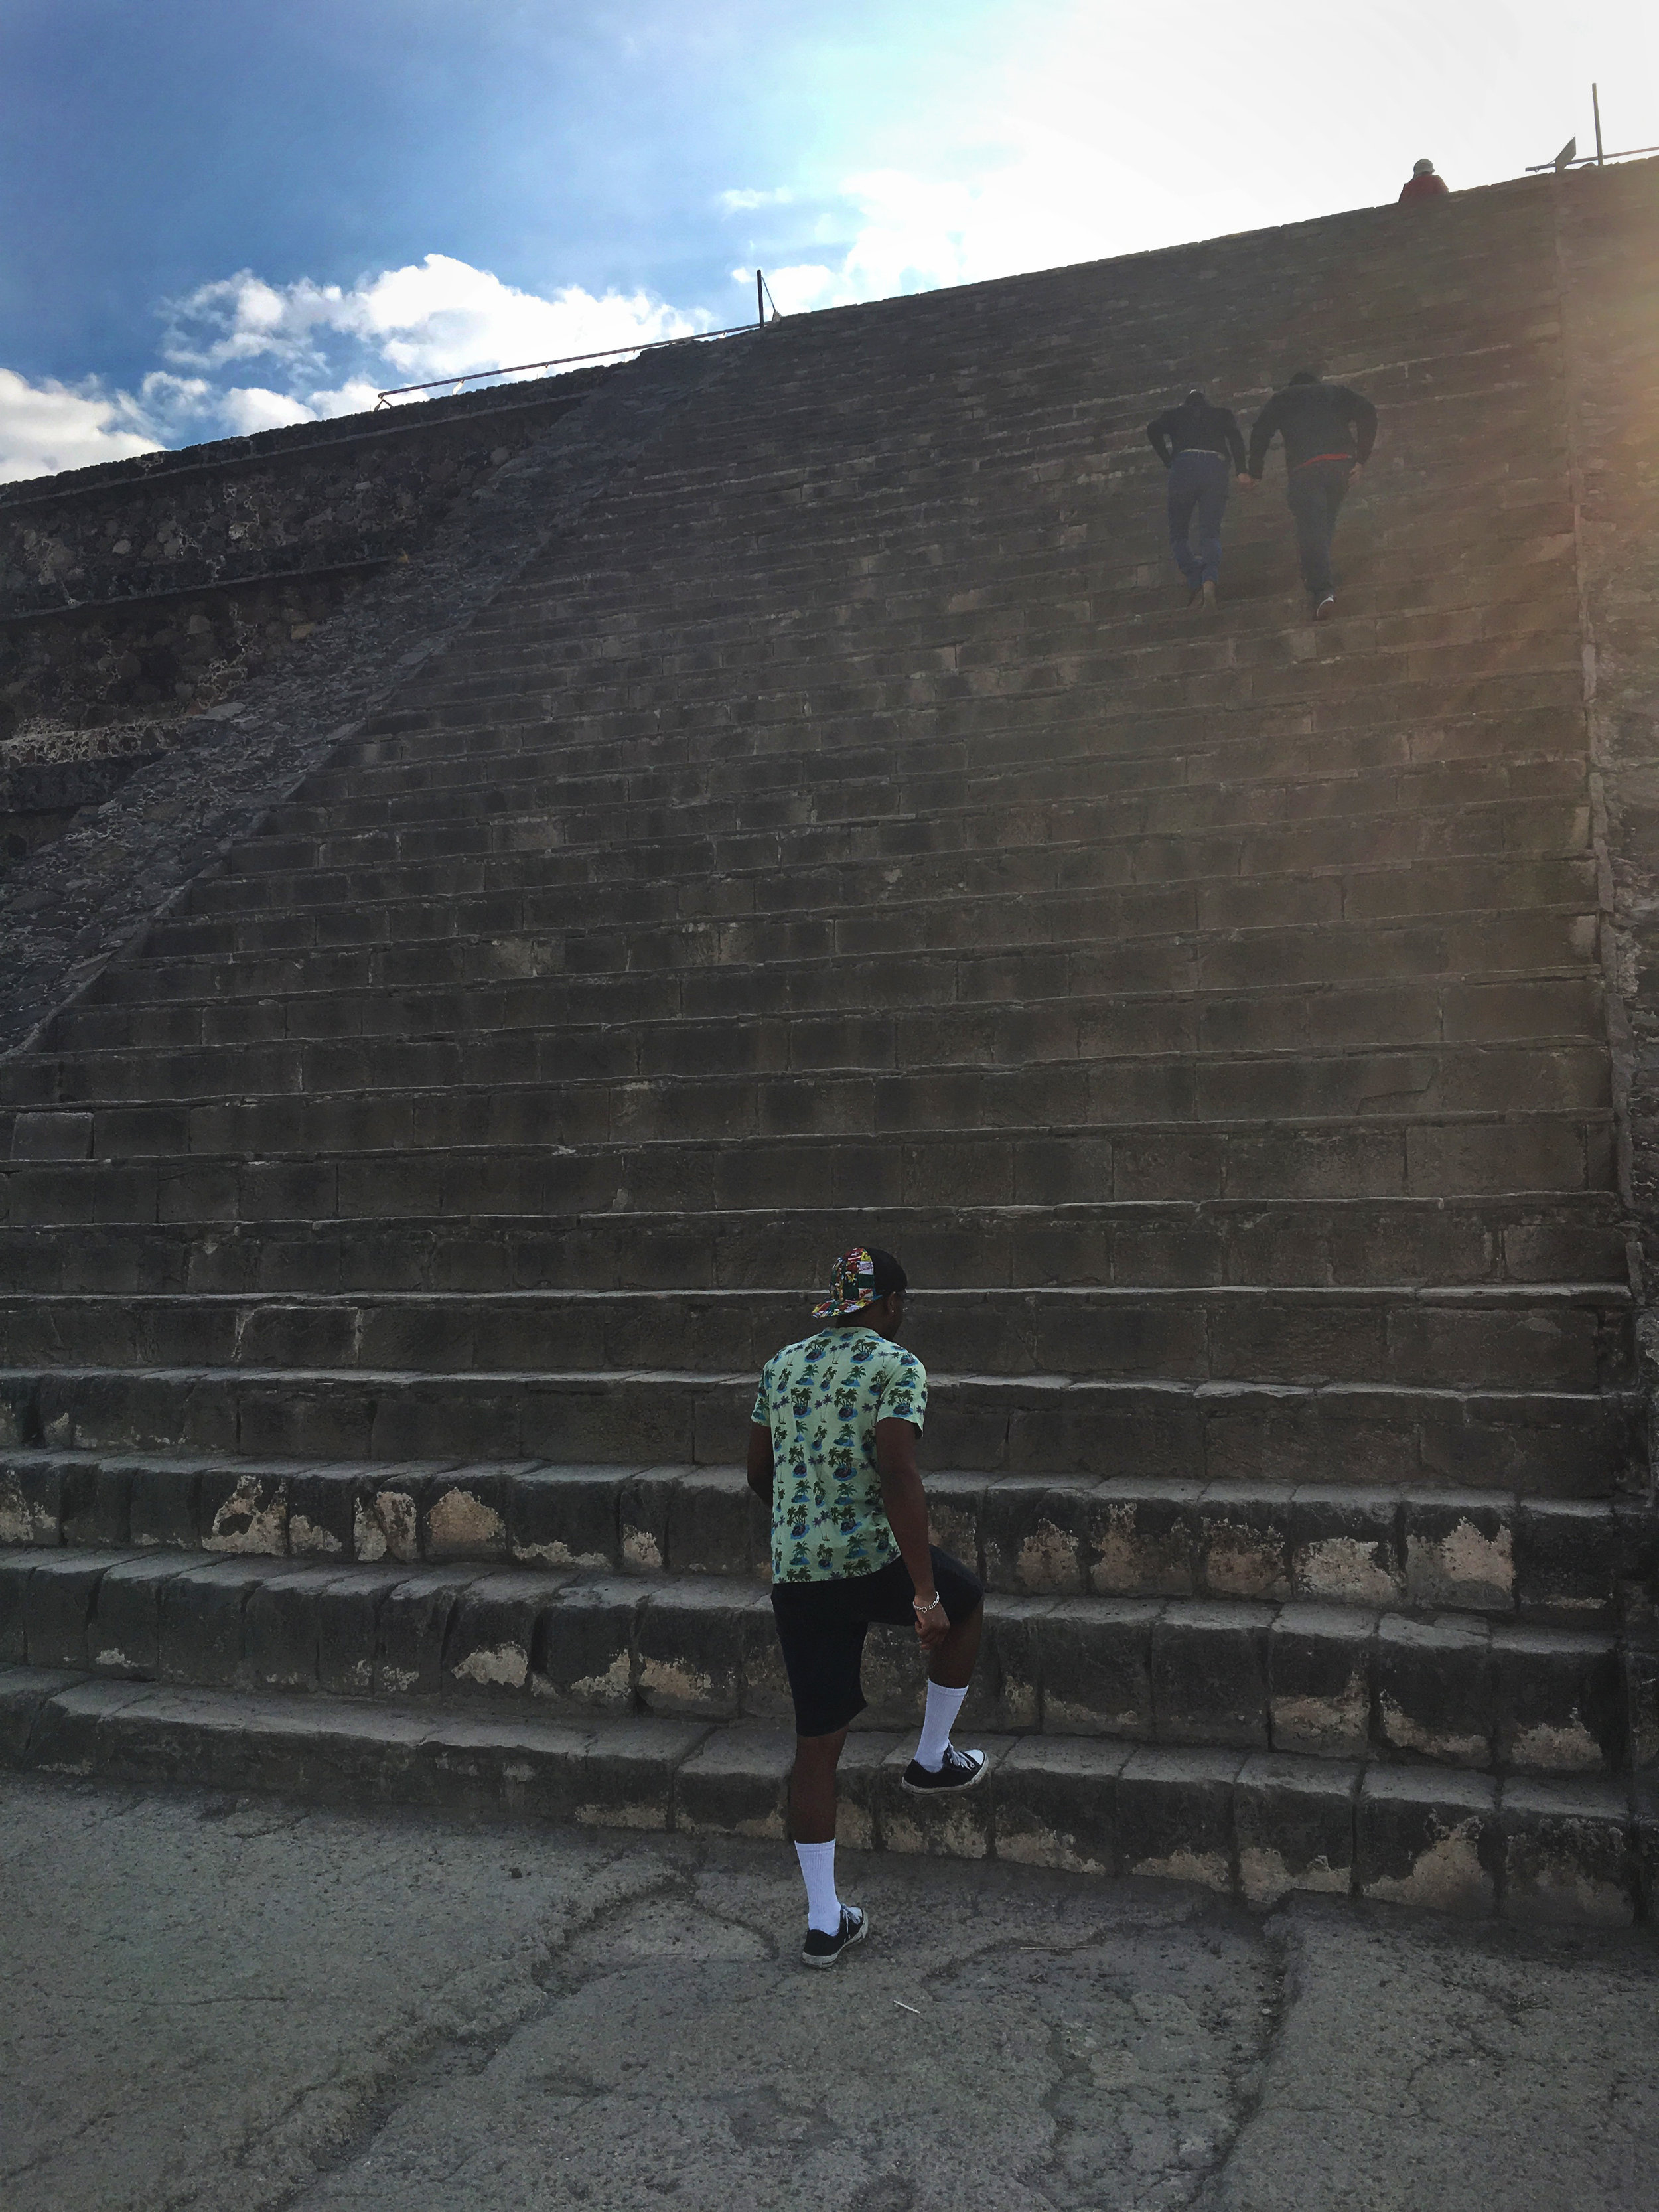 Steps leading up to a platform to view Quetzalcoatl